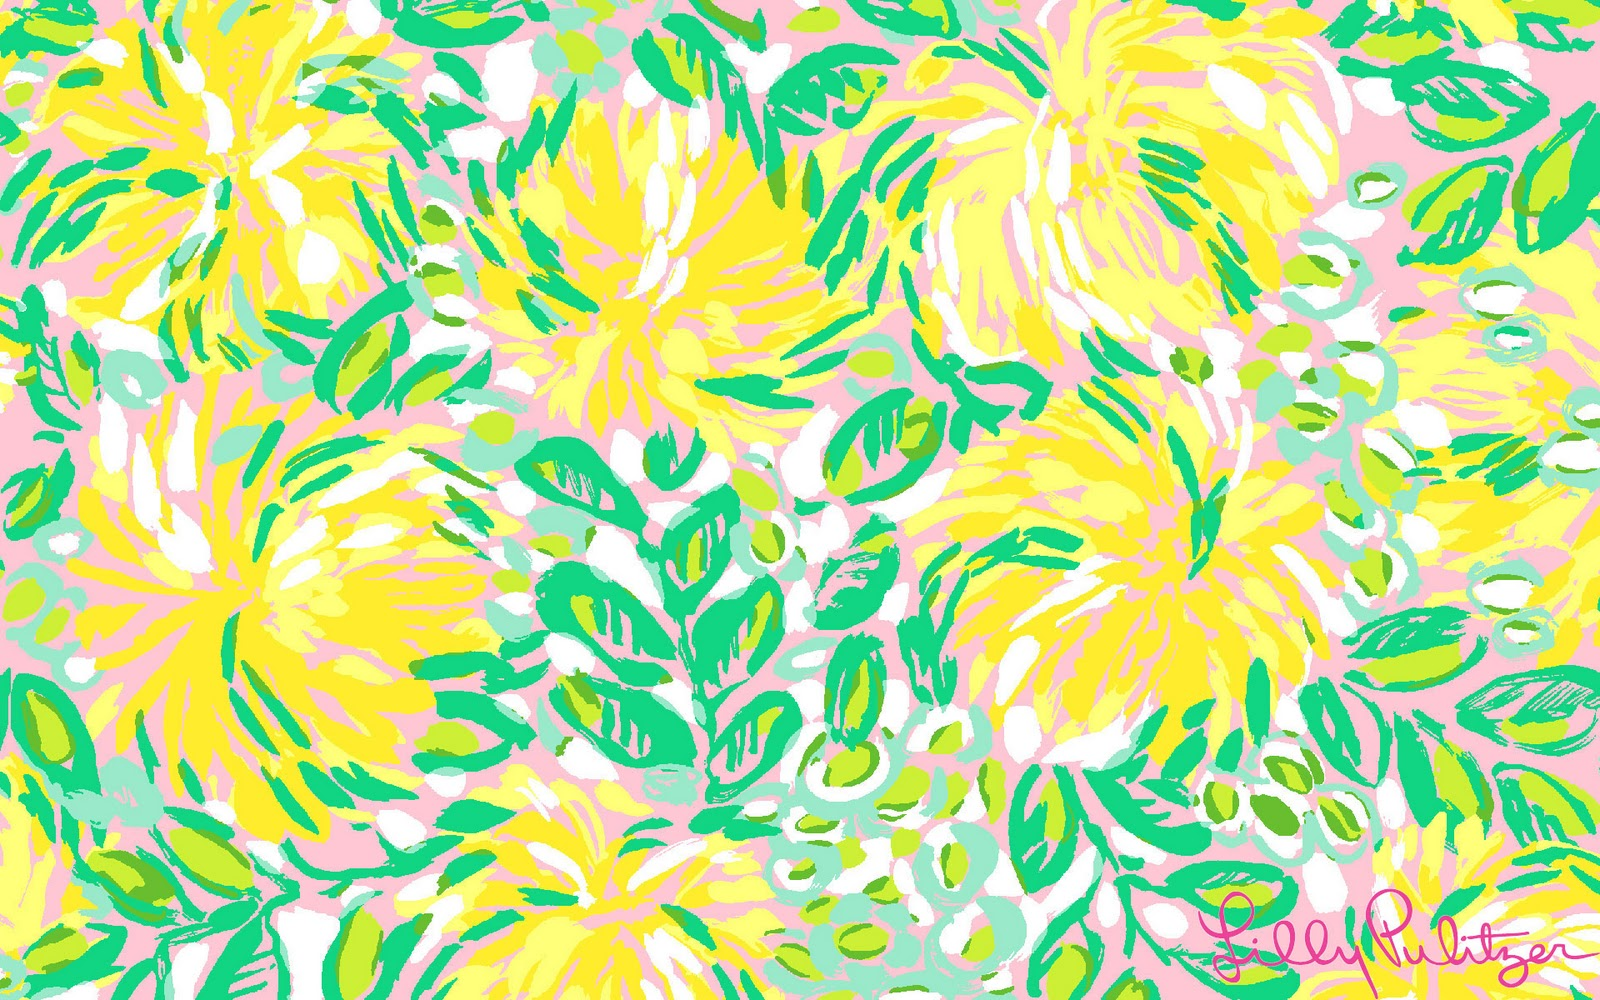 Cozy Lilly Pulitzer Backgrounds Px Hdwallsourcecom Lilly Pulitzer Wallpaper Lilly Pulitzer Patterns 2014 Lilly Pulitzer Patterns Monogram baby Lilly Pulitzer Patterns